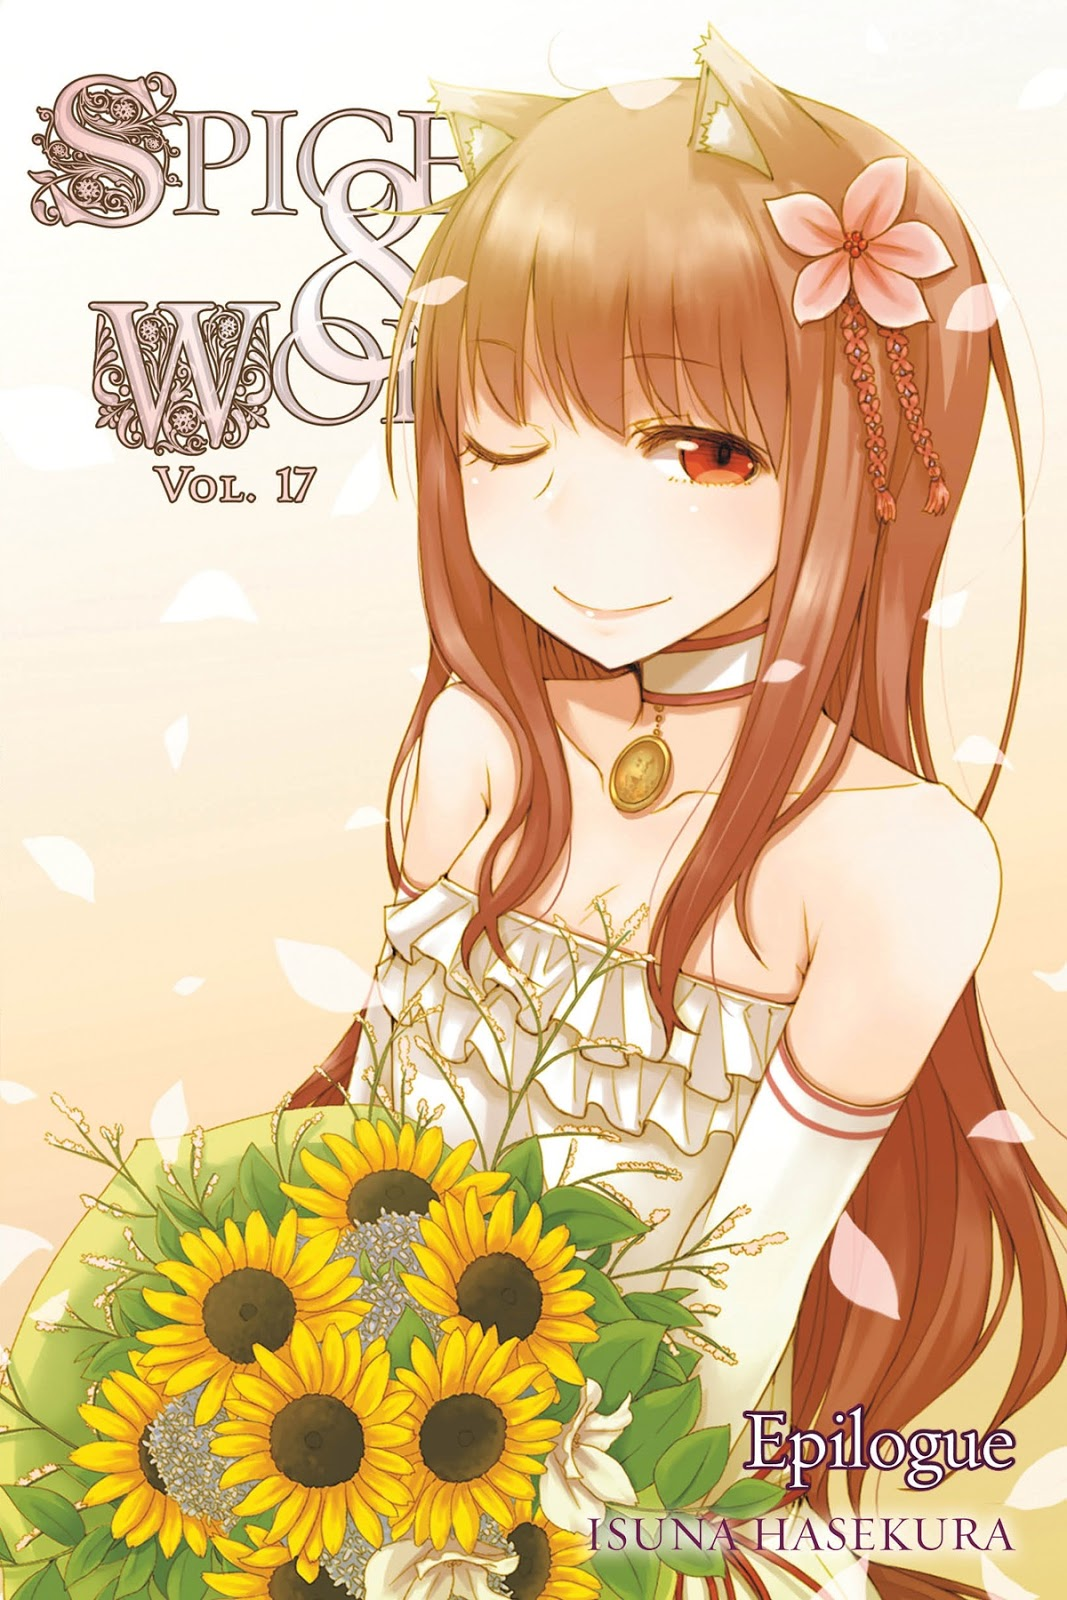 Download Spice and Wolf Light Novel [EPUB]